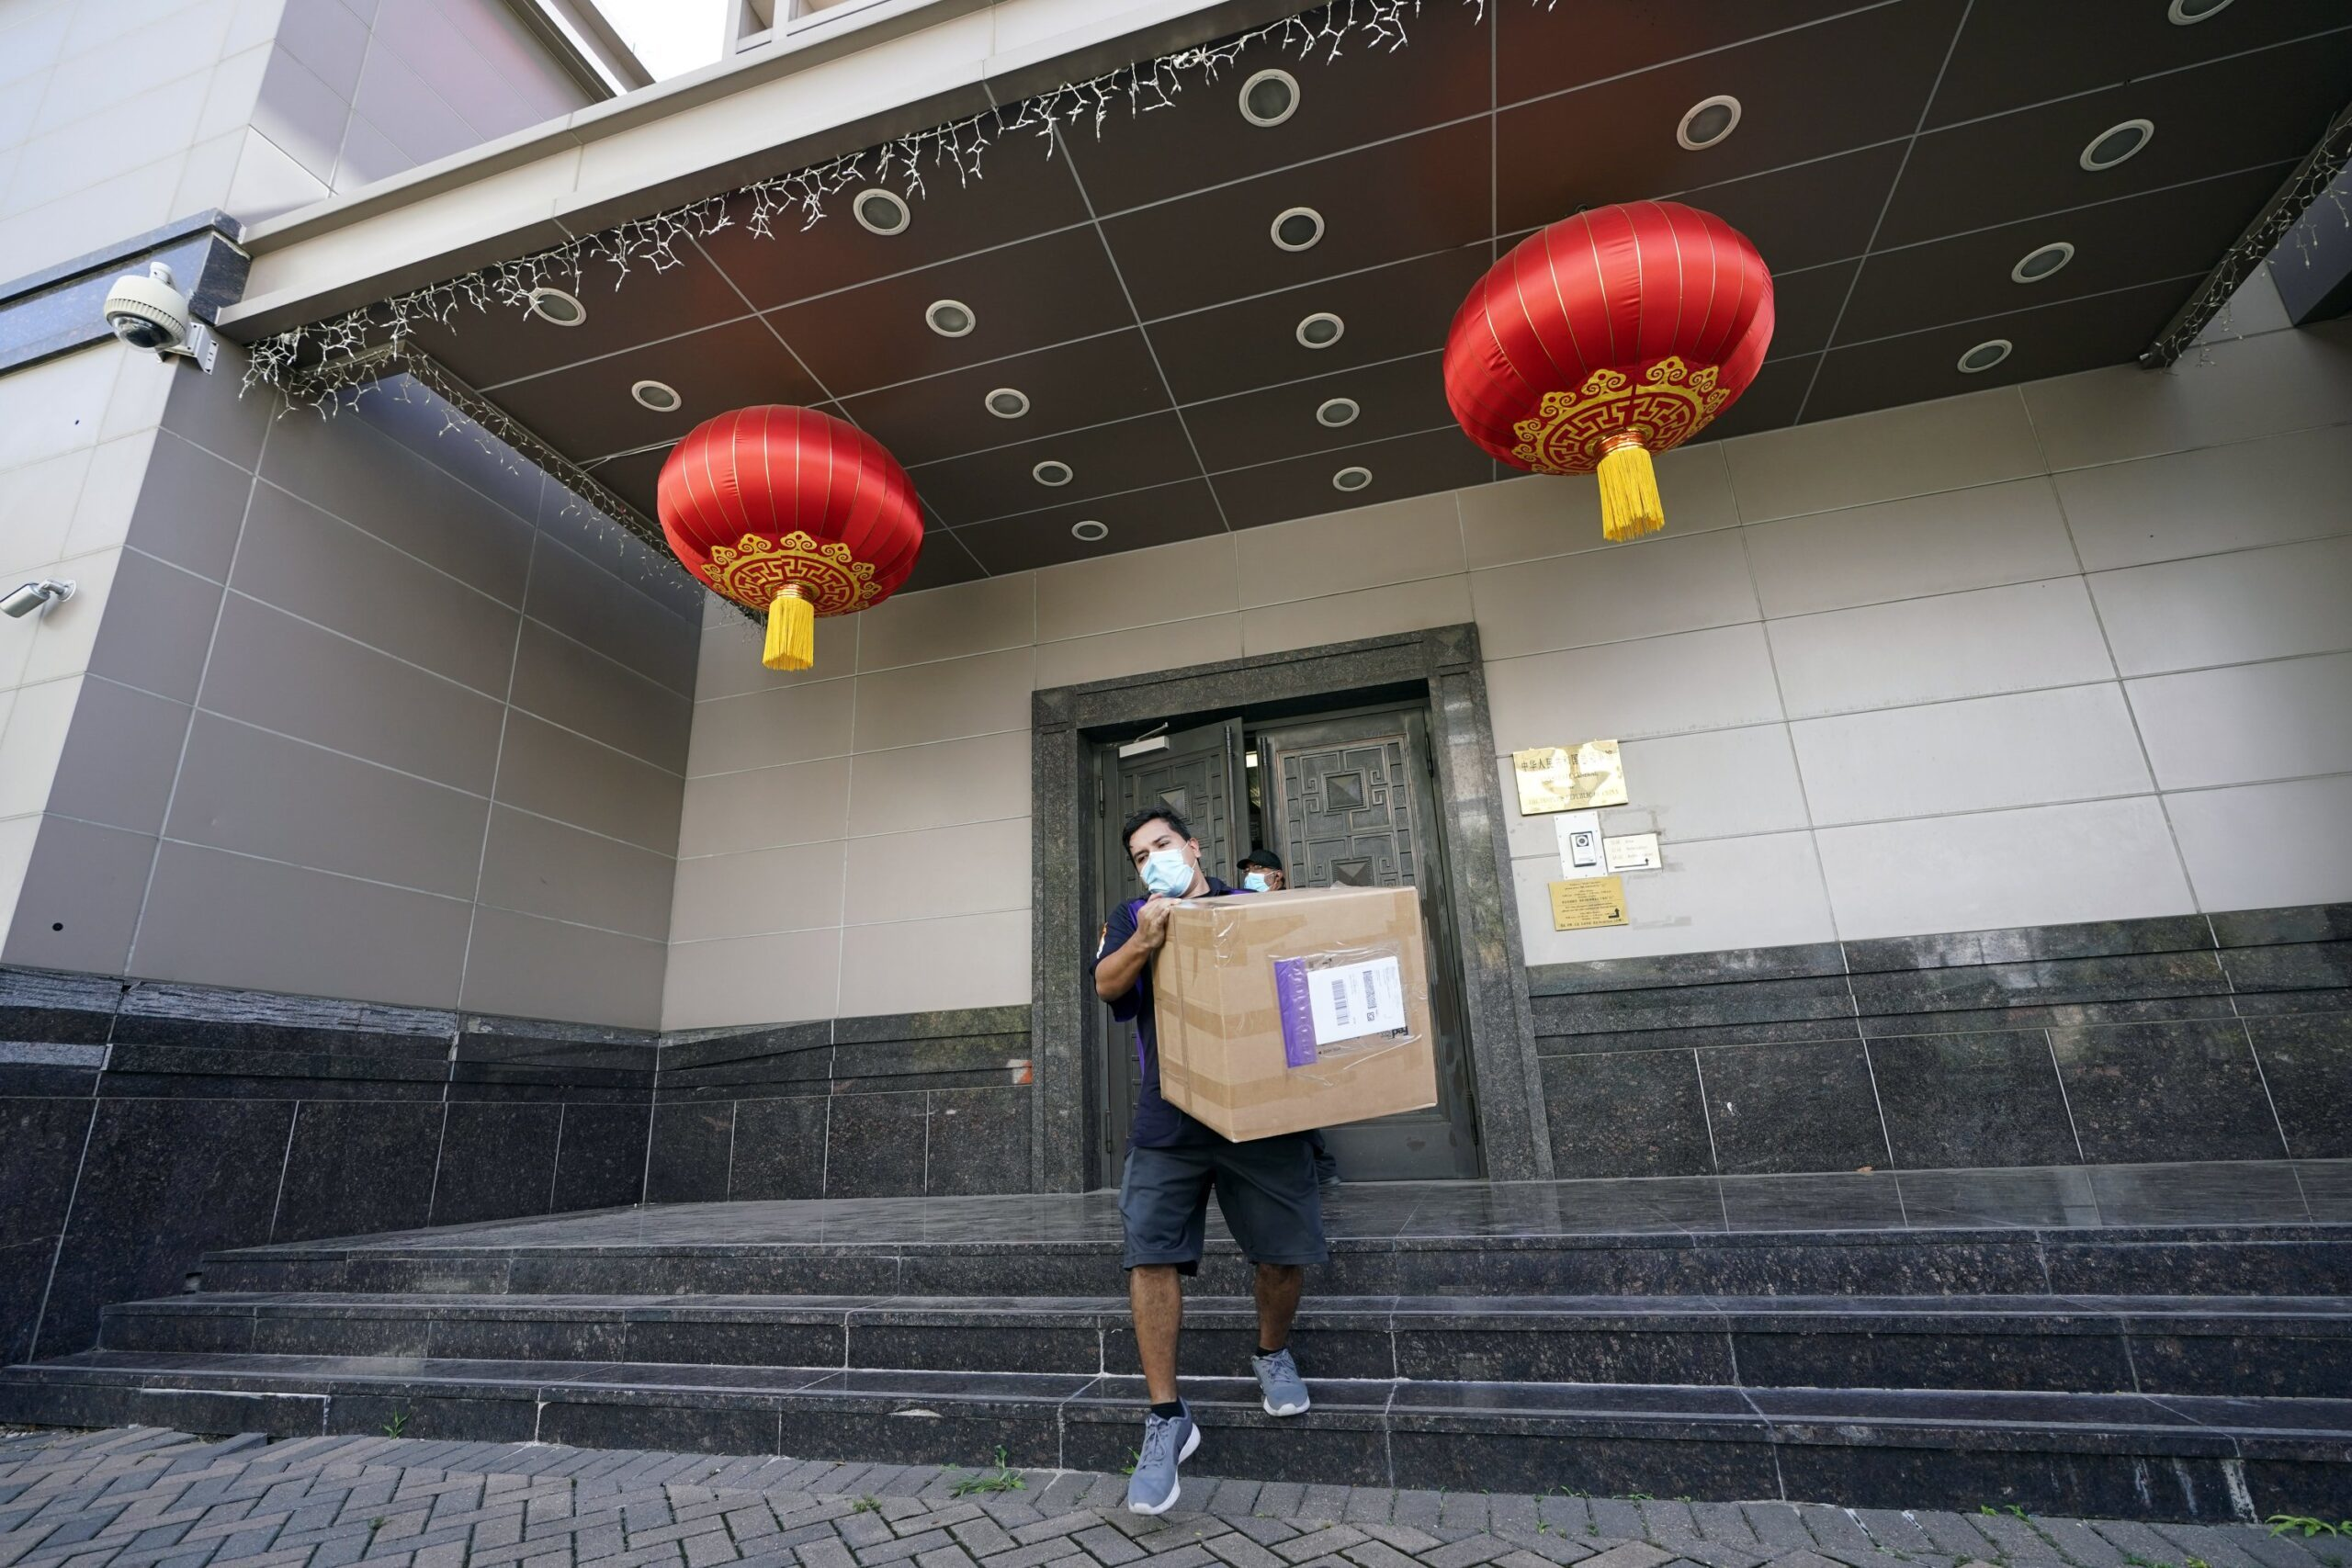 China tells US to close consulate in Chengdu in growing spat 4